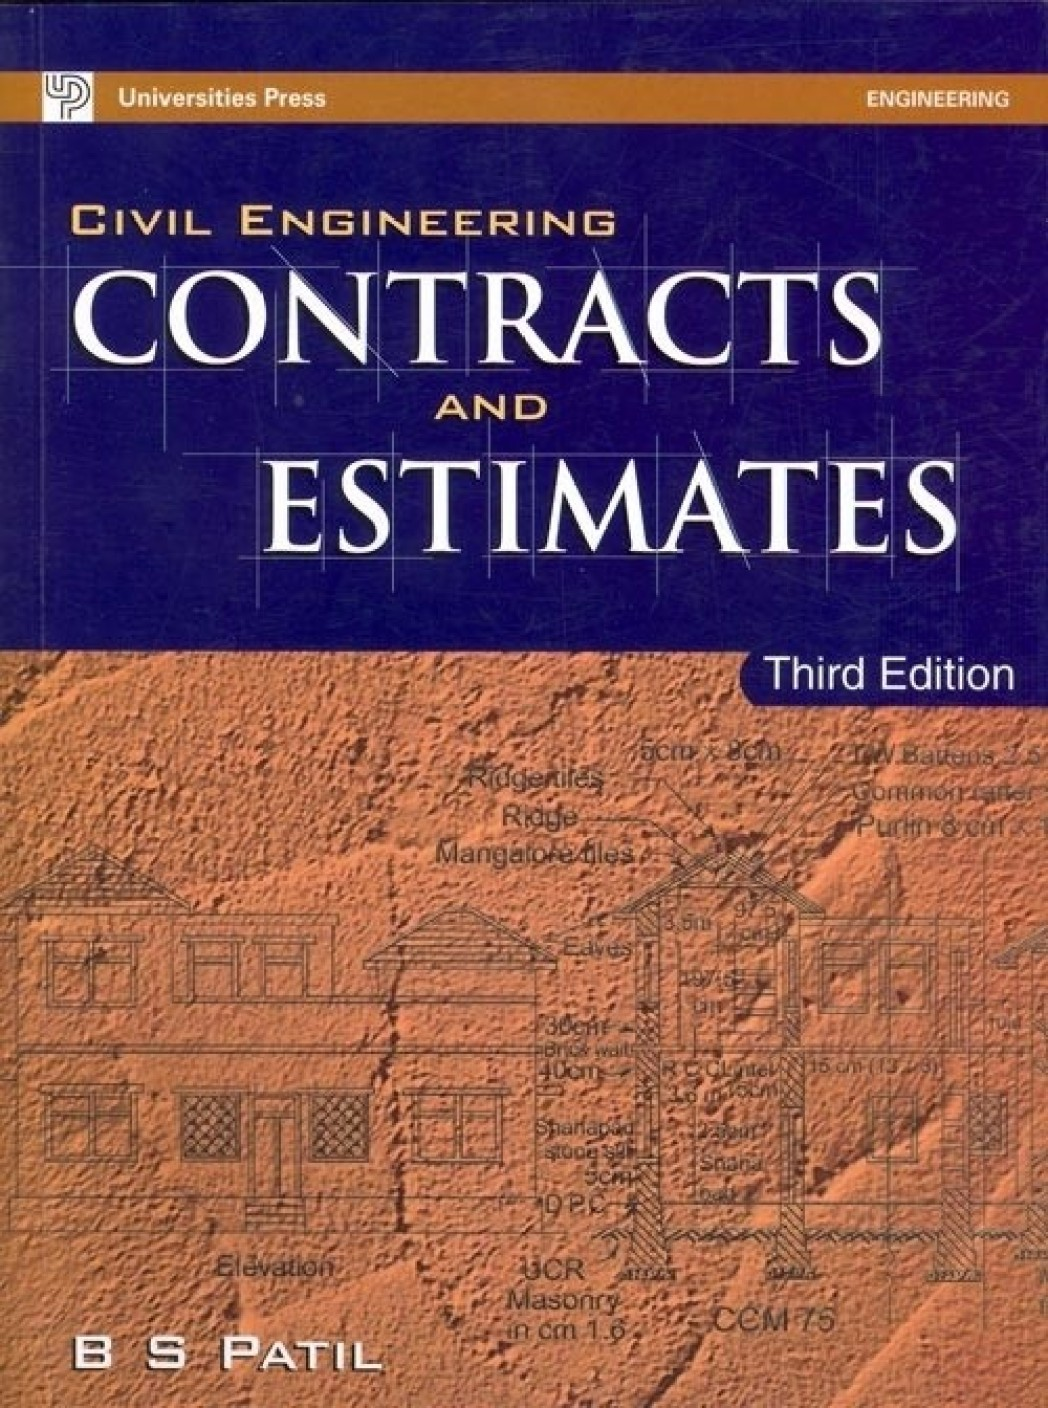 Building And Engineering Contracts By B S Patil Pdf Printer